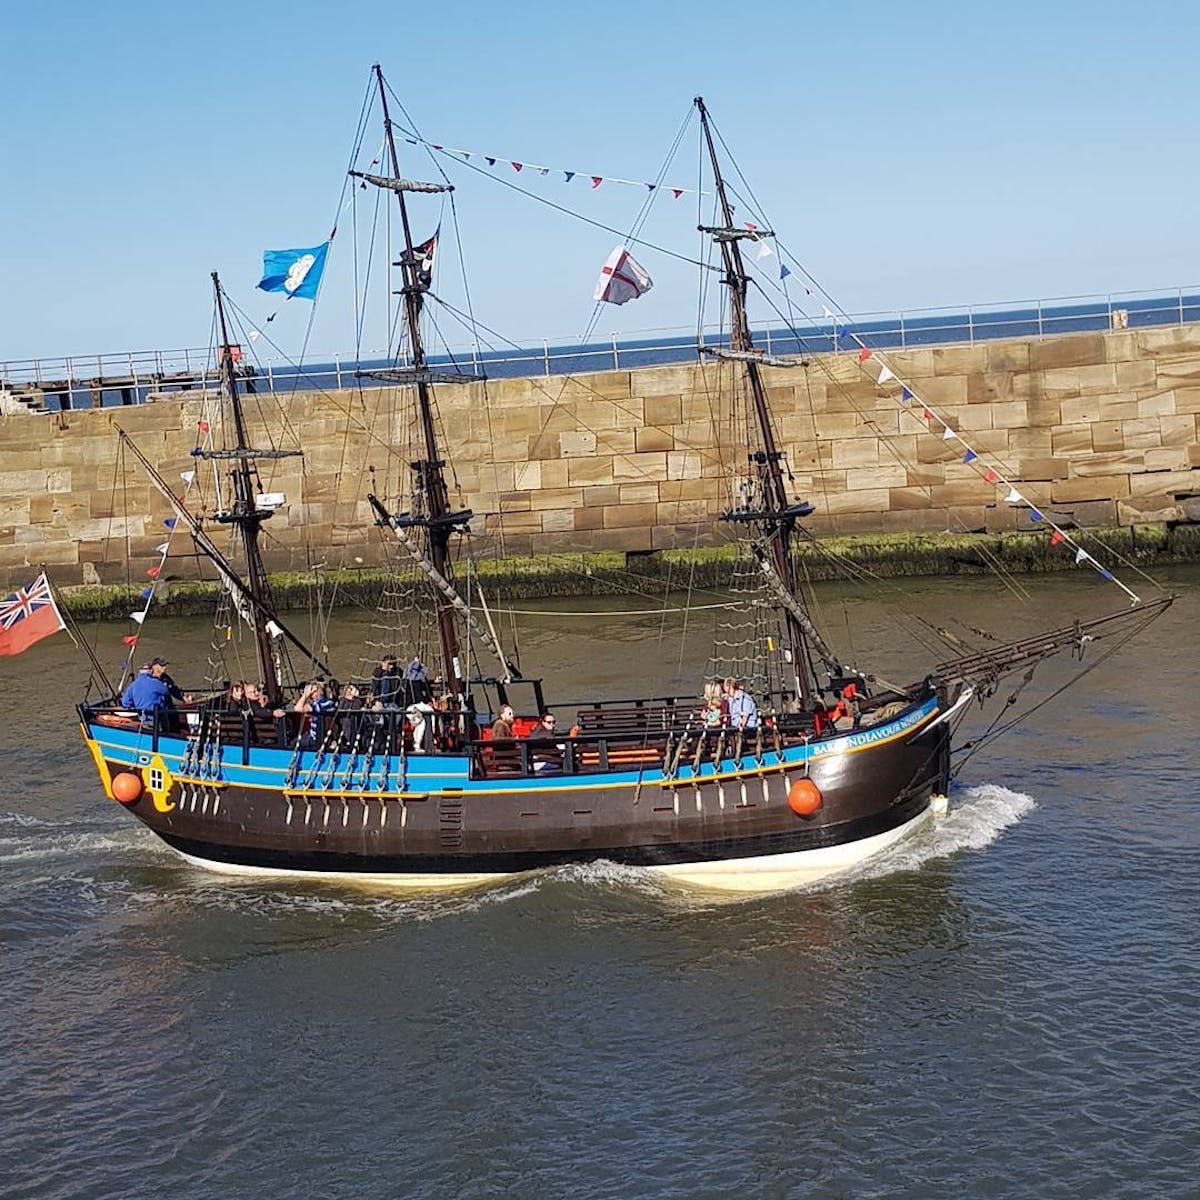 Boat sailing in Whitby.